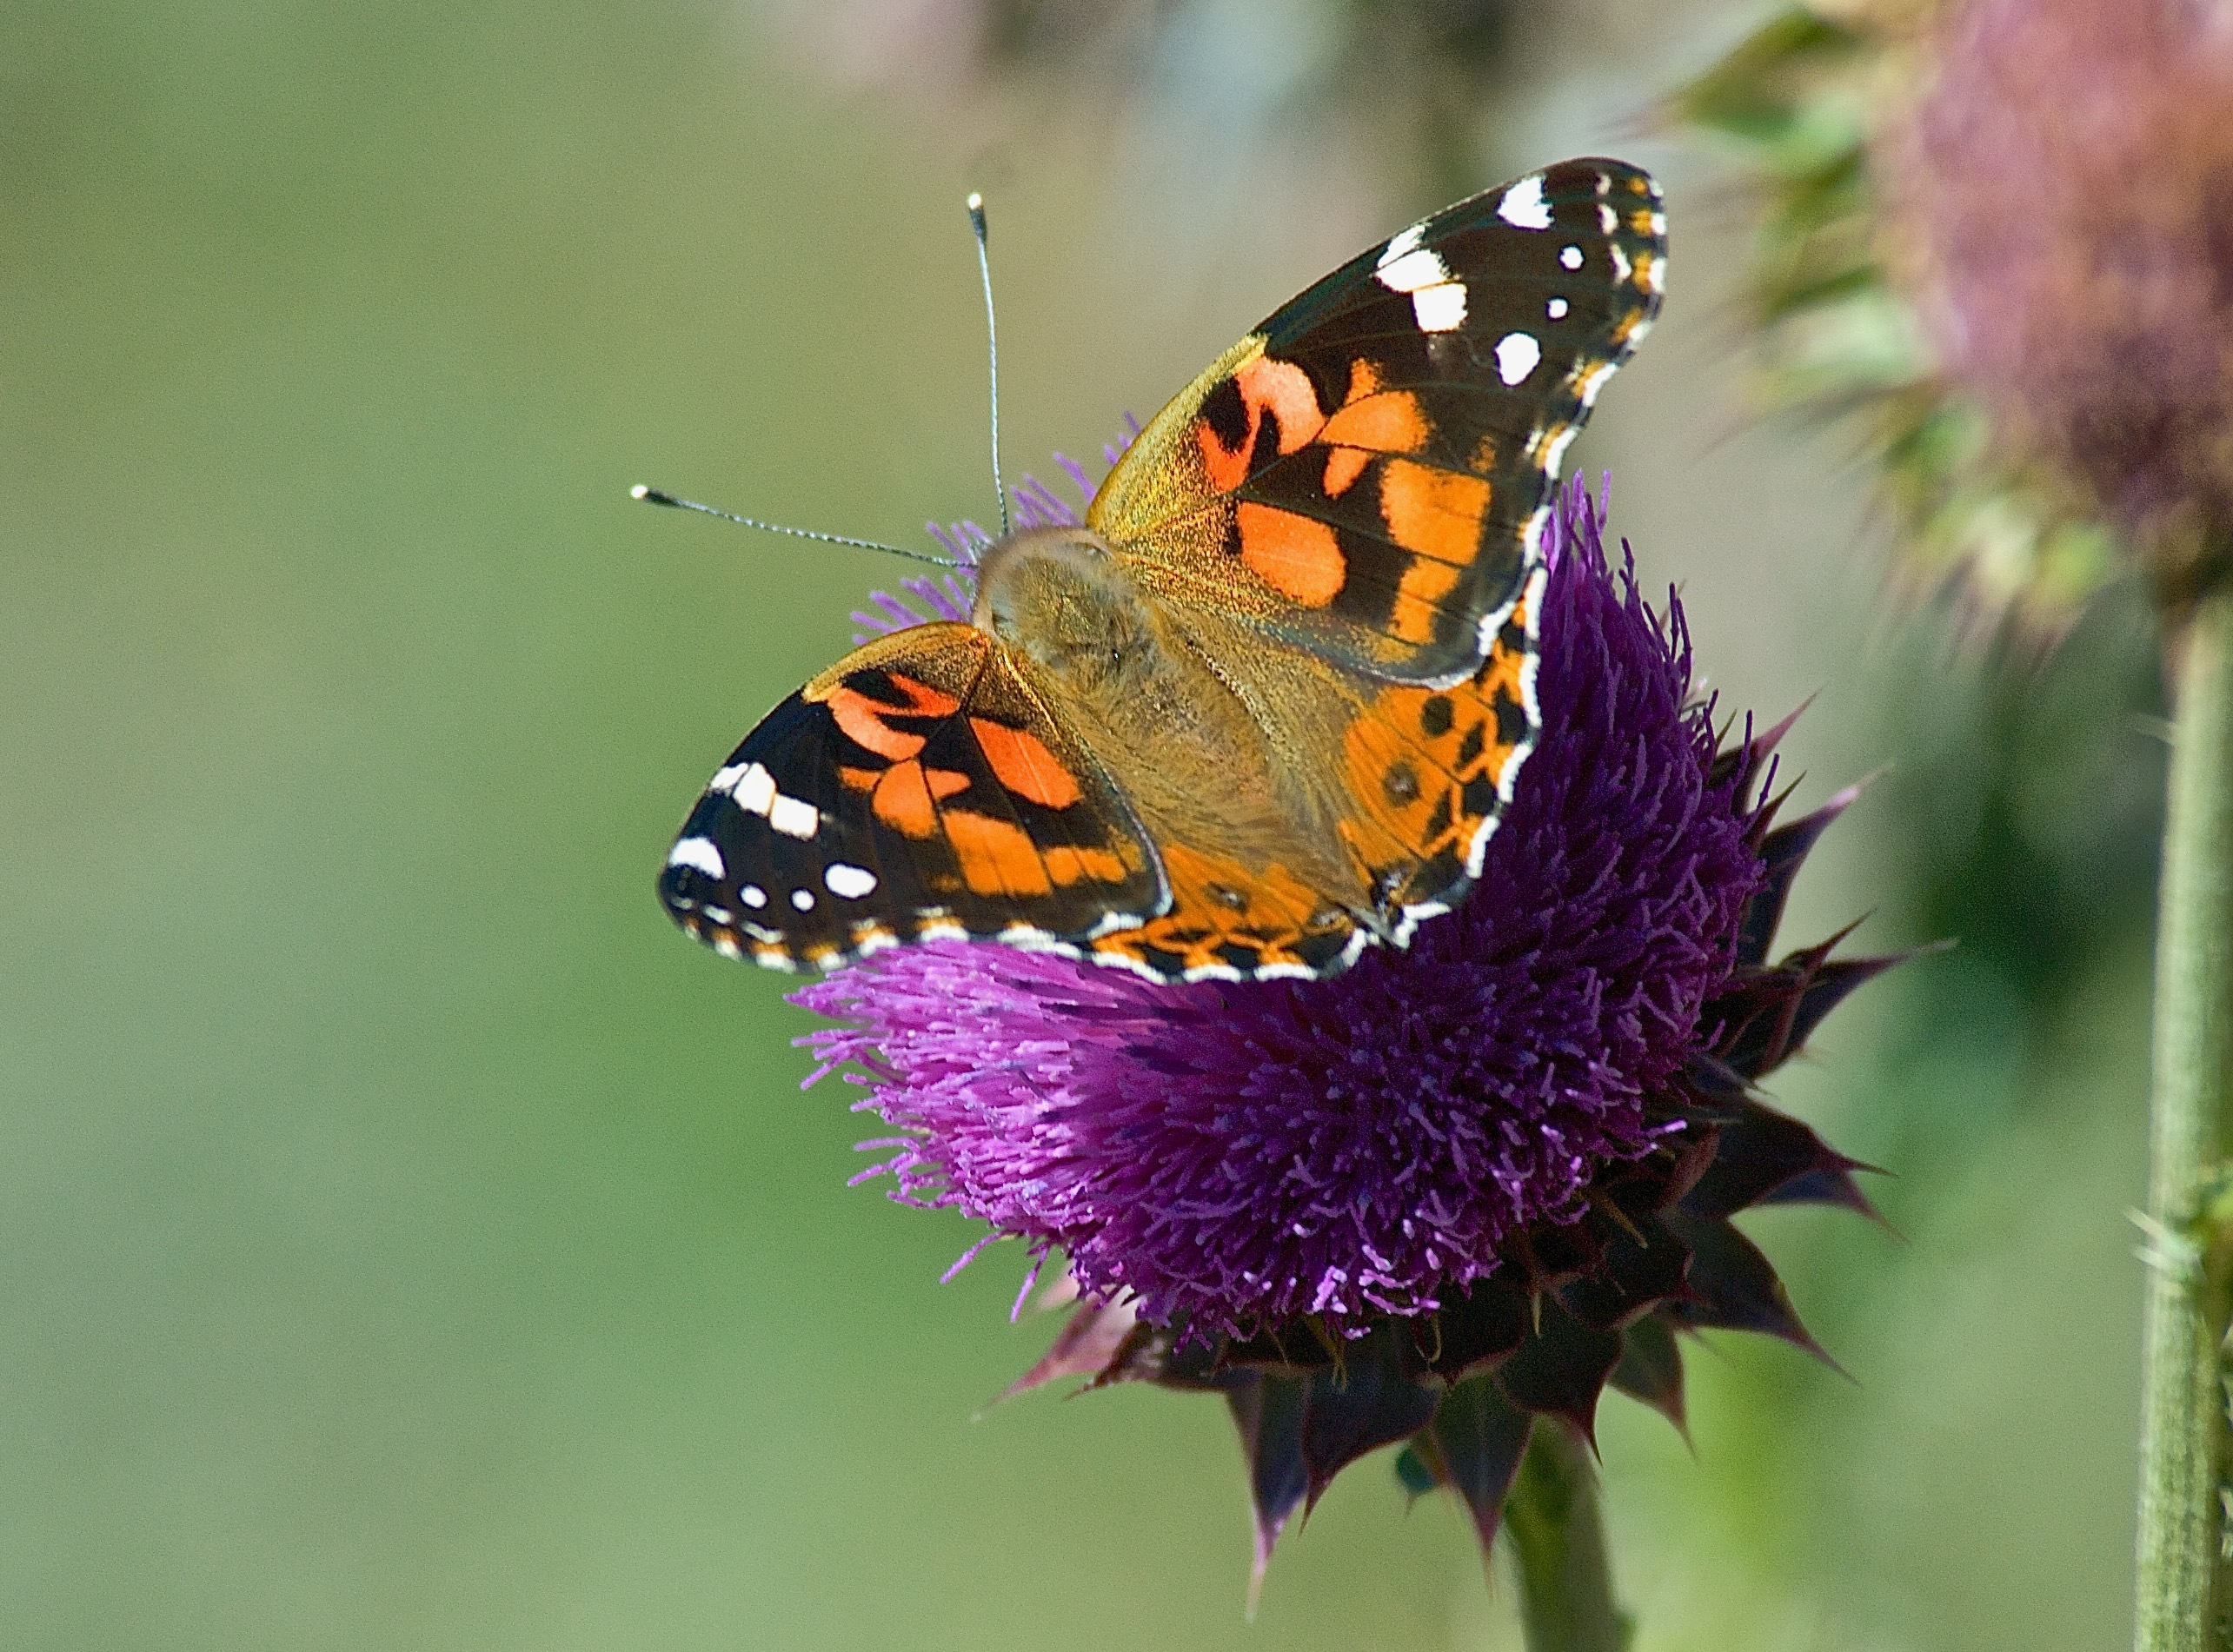 West Coast Lady Butterfly ((Vanessa annabella) on Musk Thistle